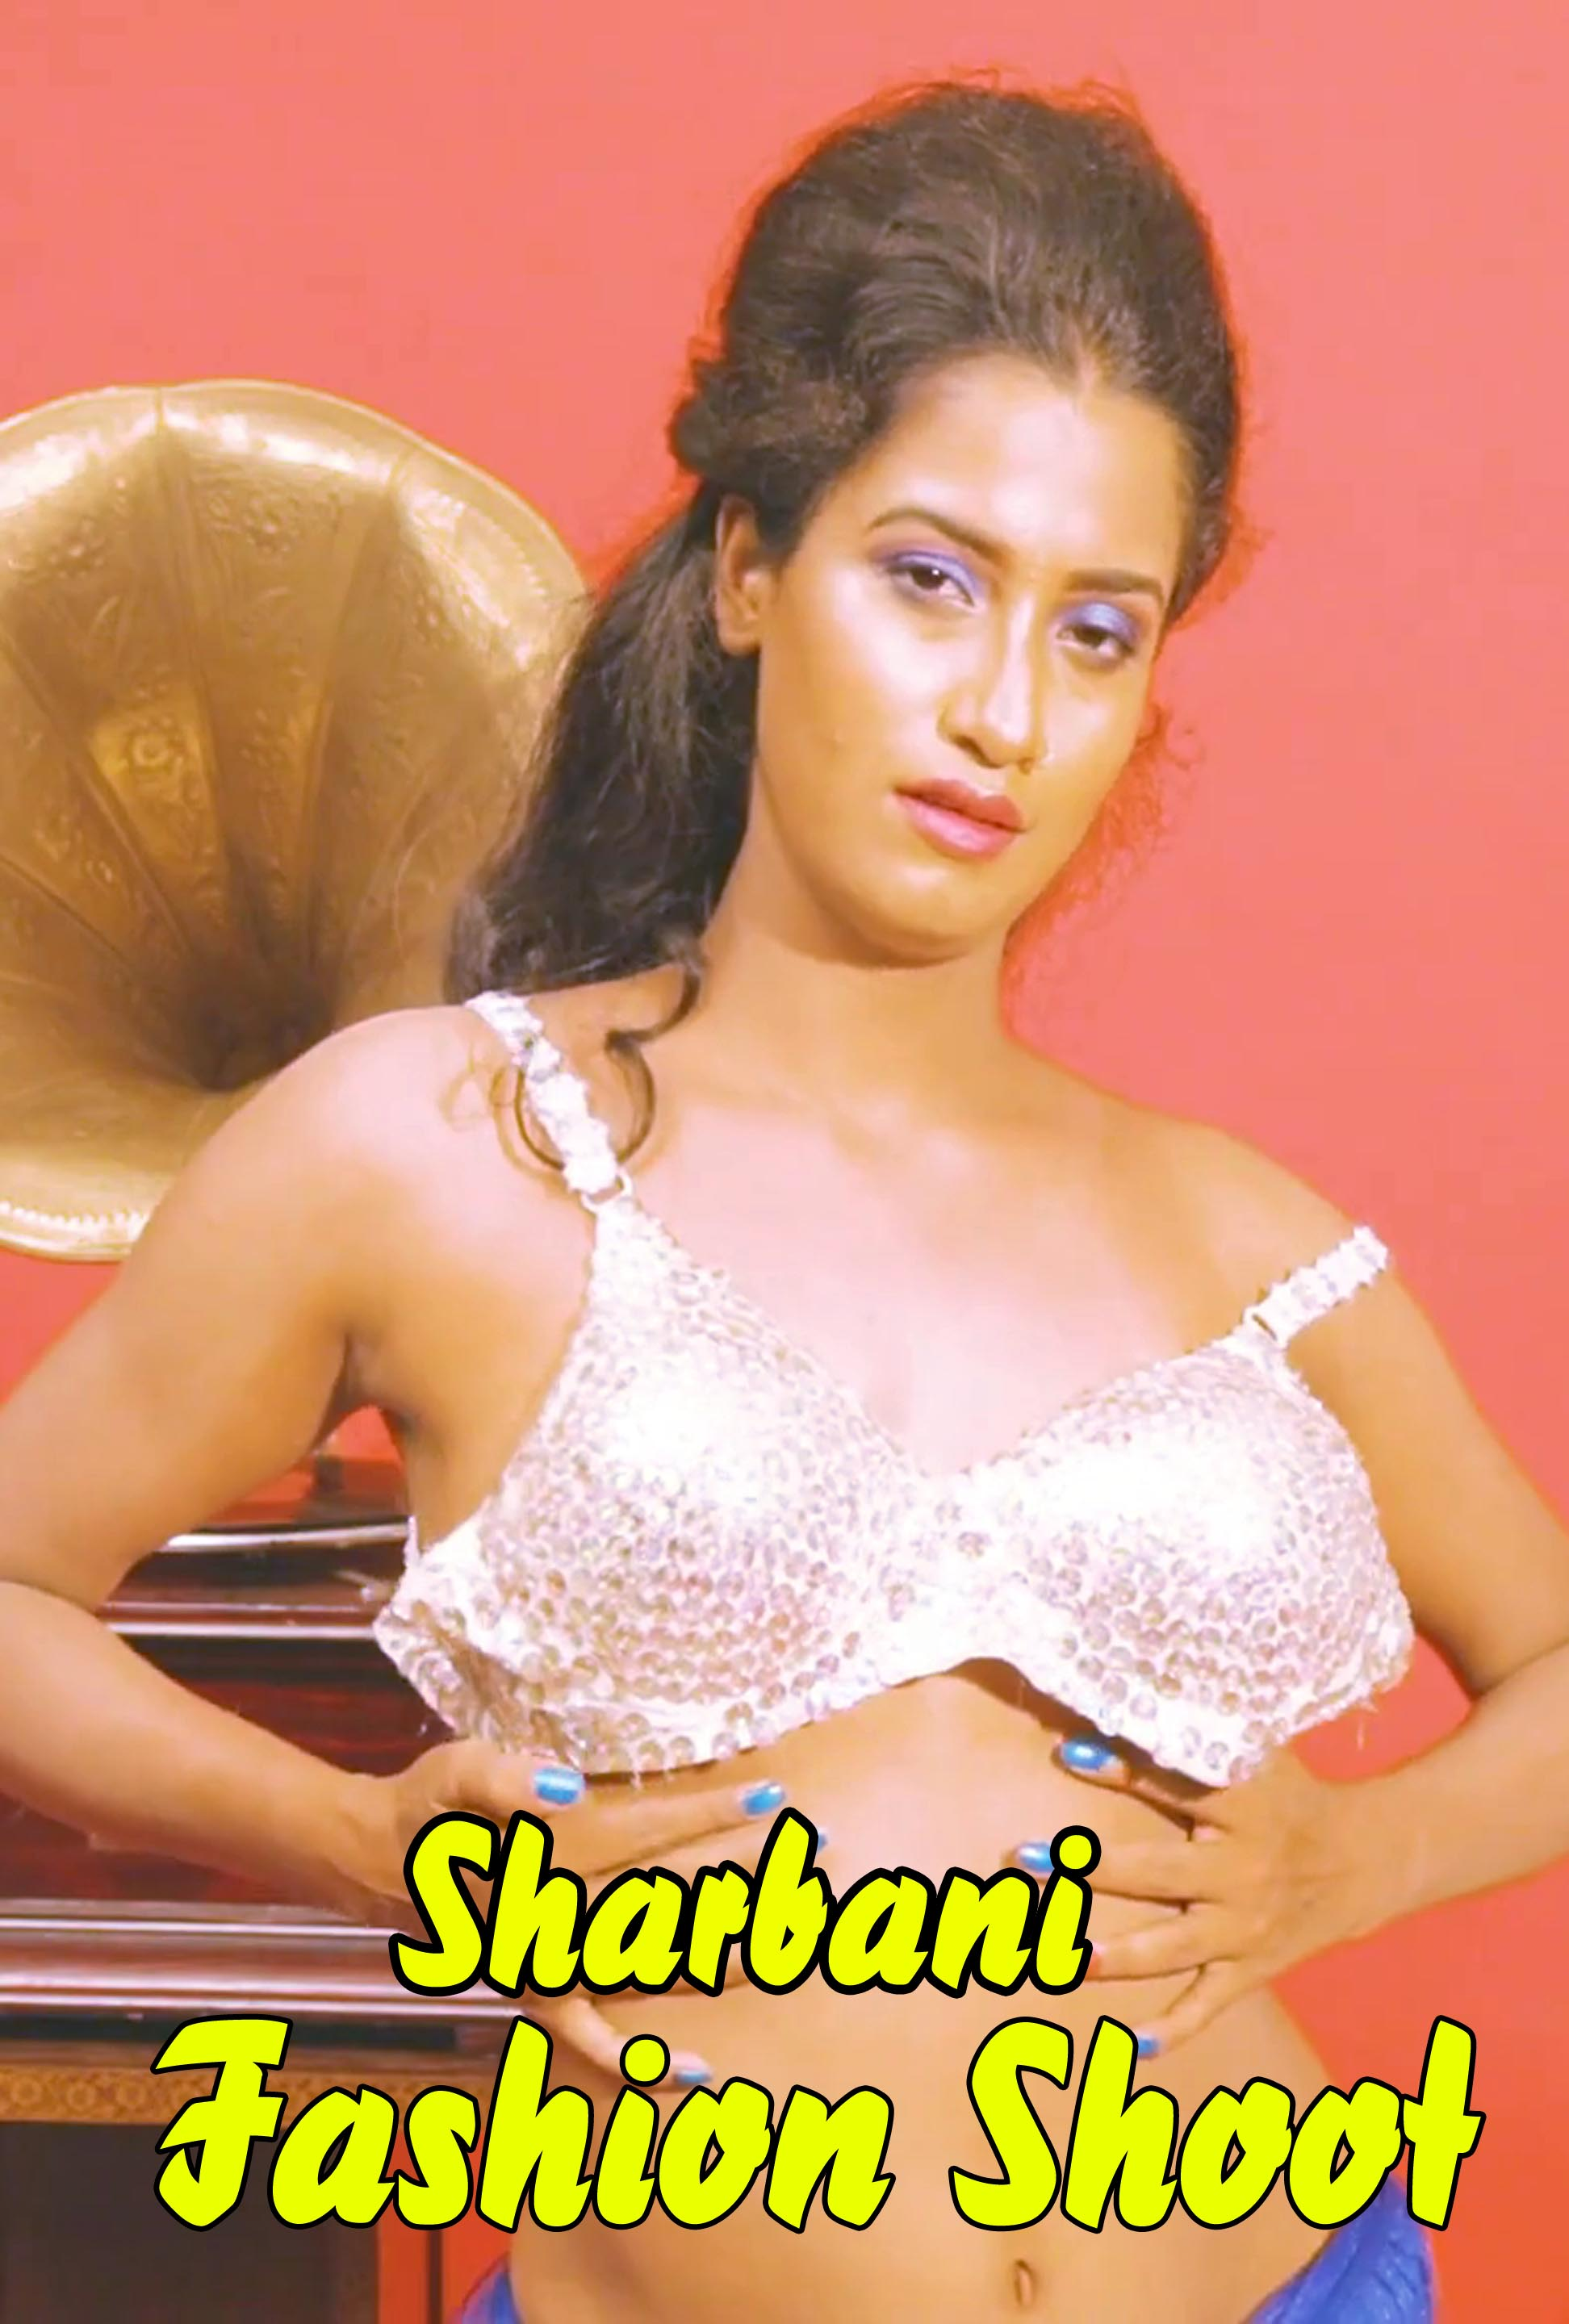 Sharbani Fashion Shoot 2020 Hindi Nuefliks Originals Video 720p HDRip 60MB Download